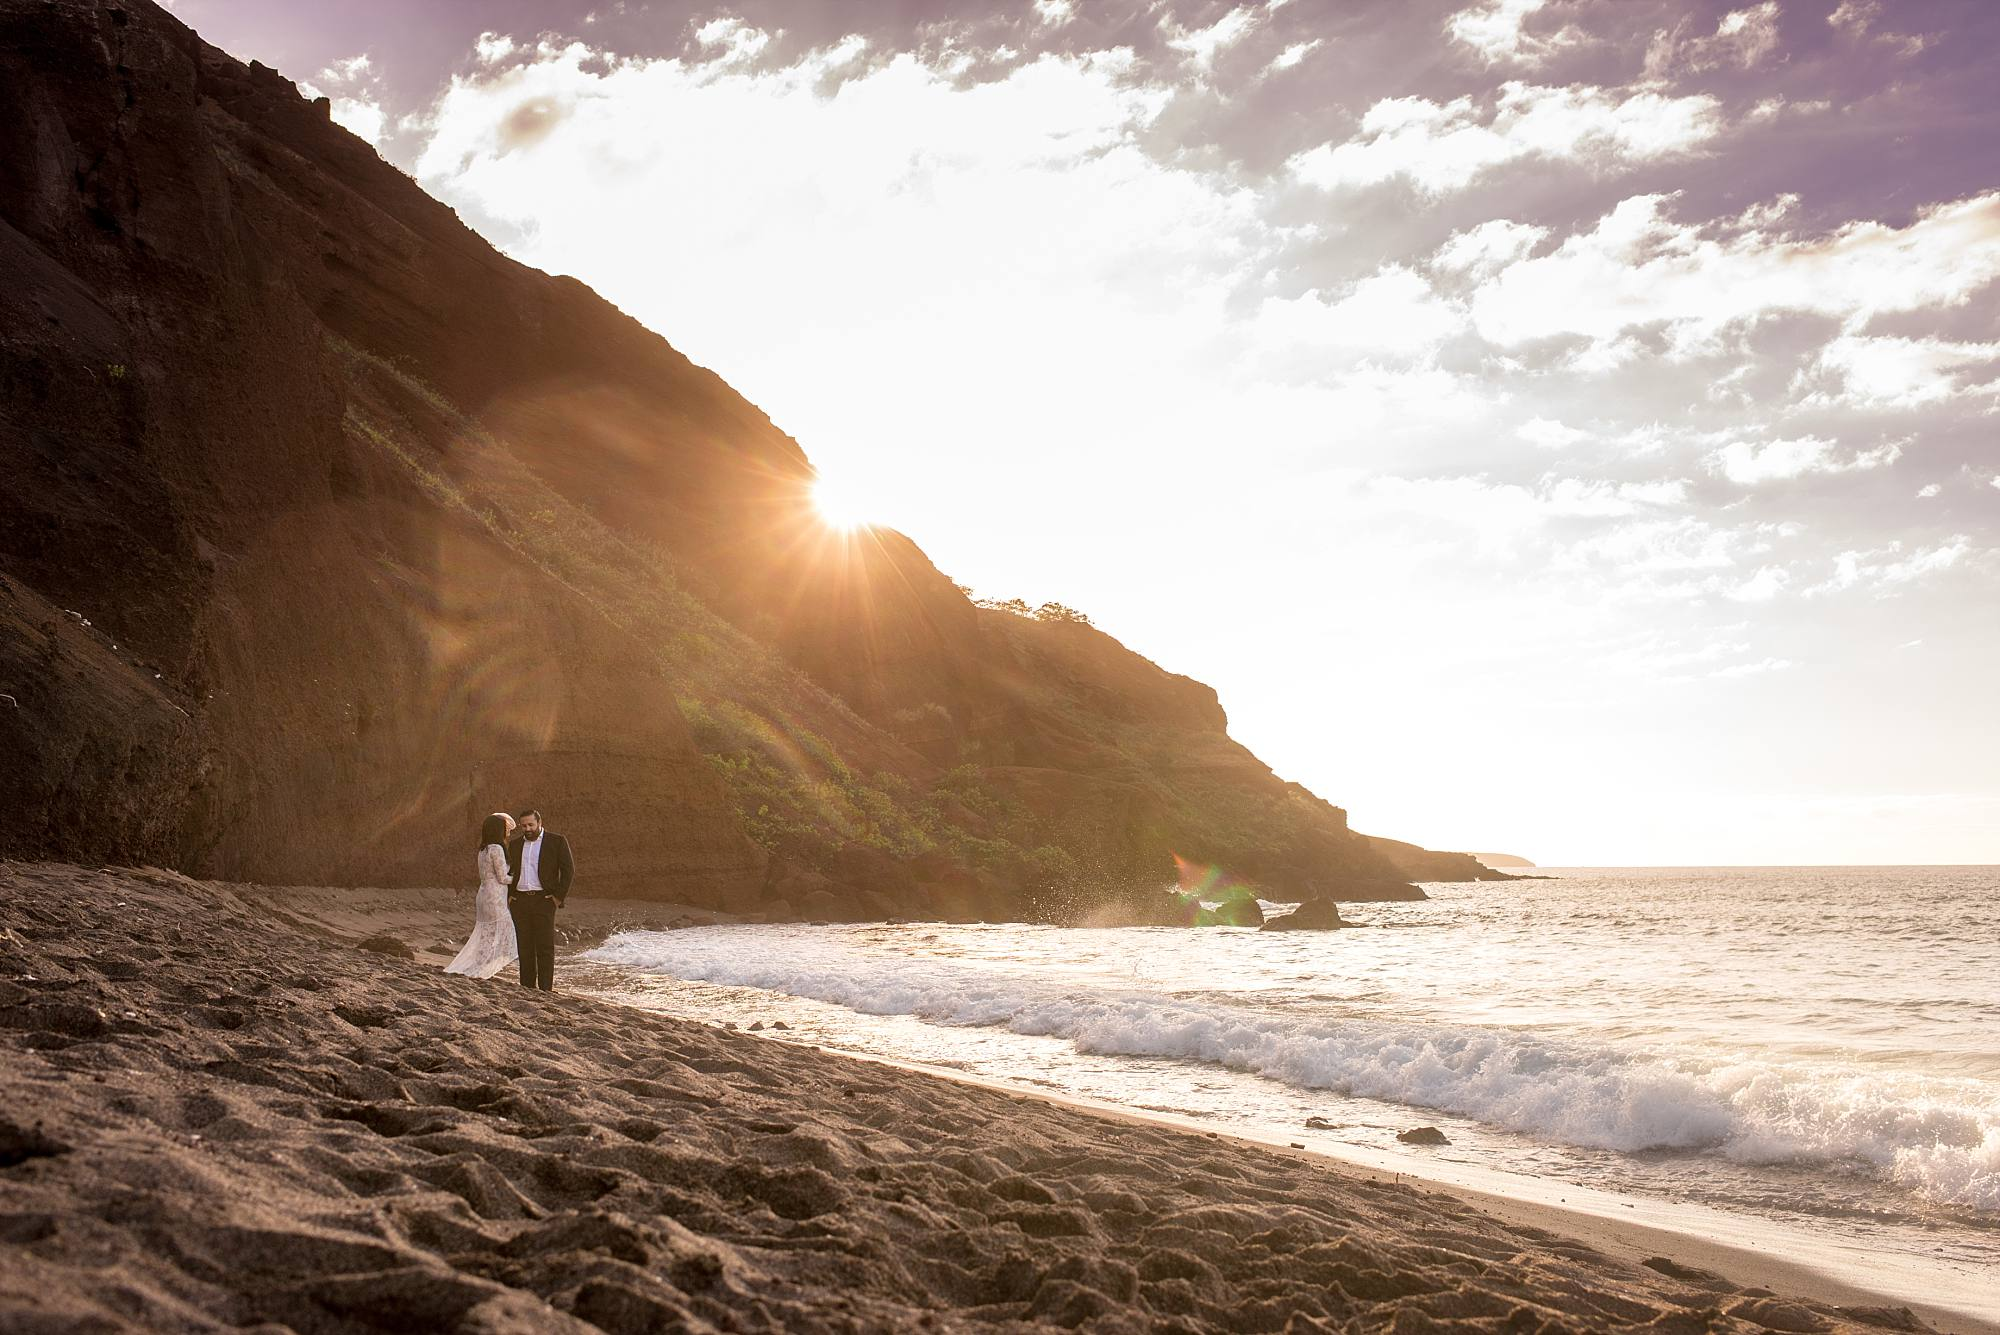 Bride and groom on beach with mountain in background light cascading over it